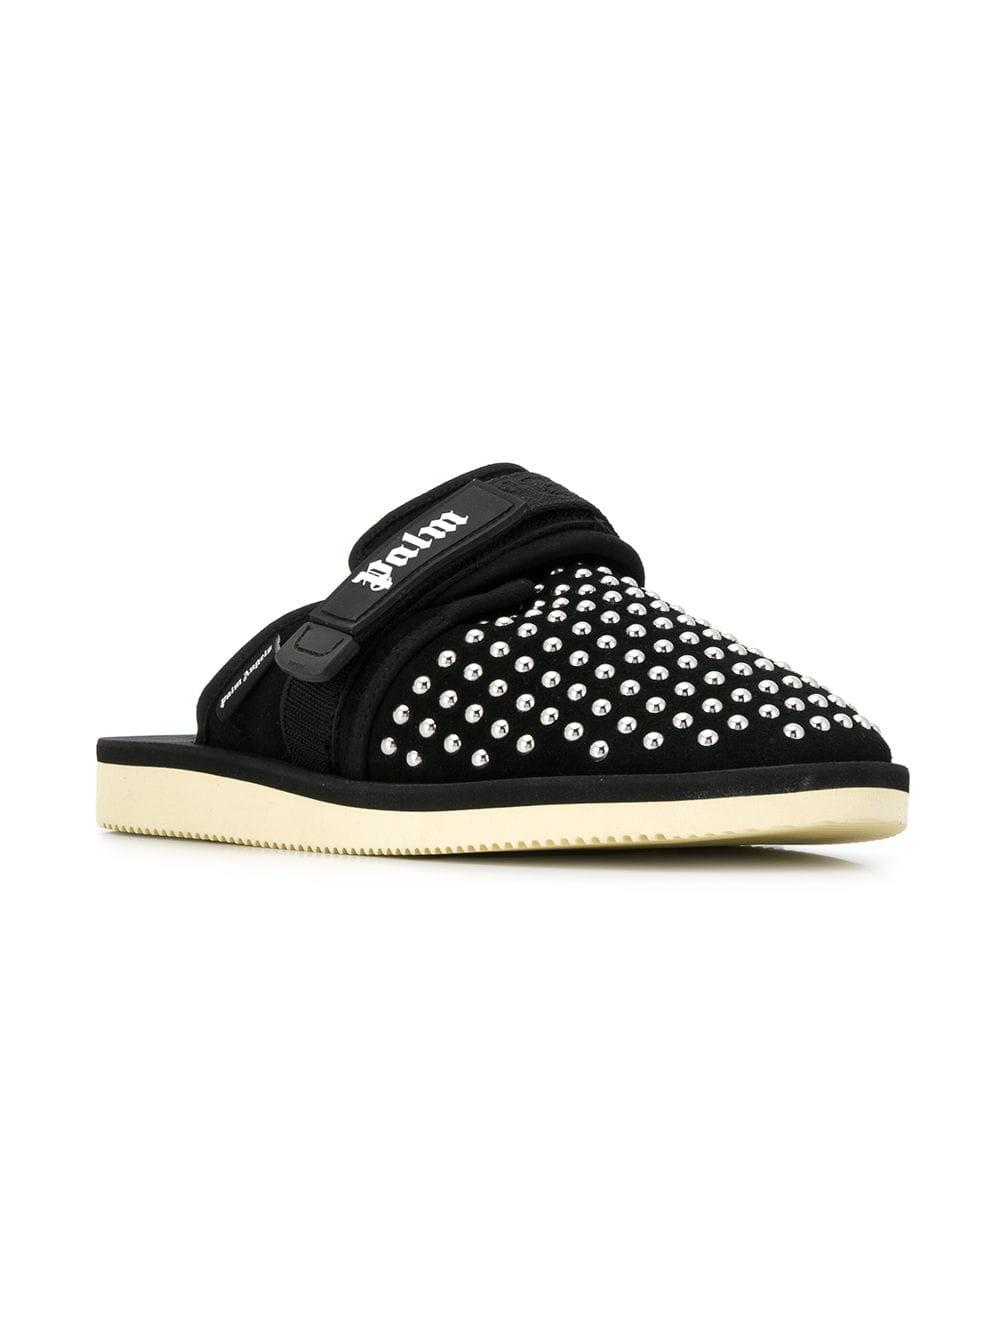 360c89186c7 Lyst - Palm Angels Studded Logo Slippers in Black for Men